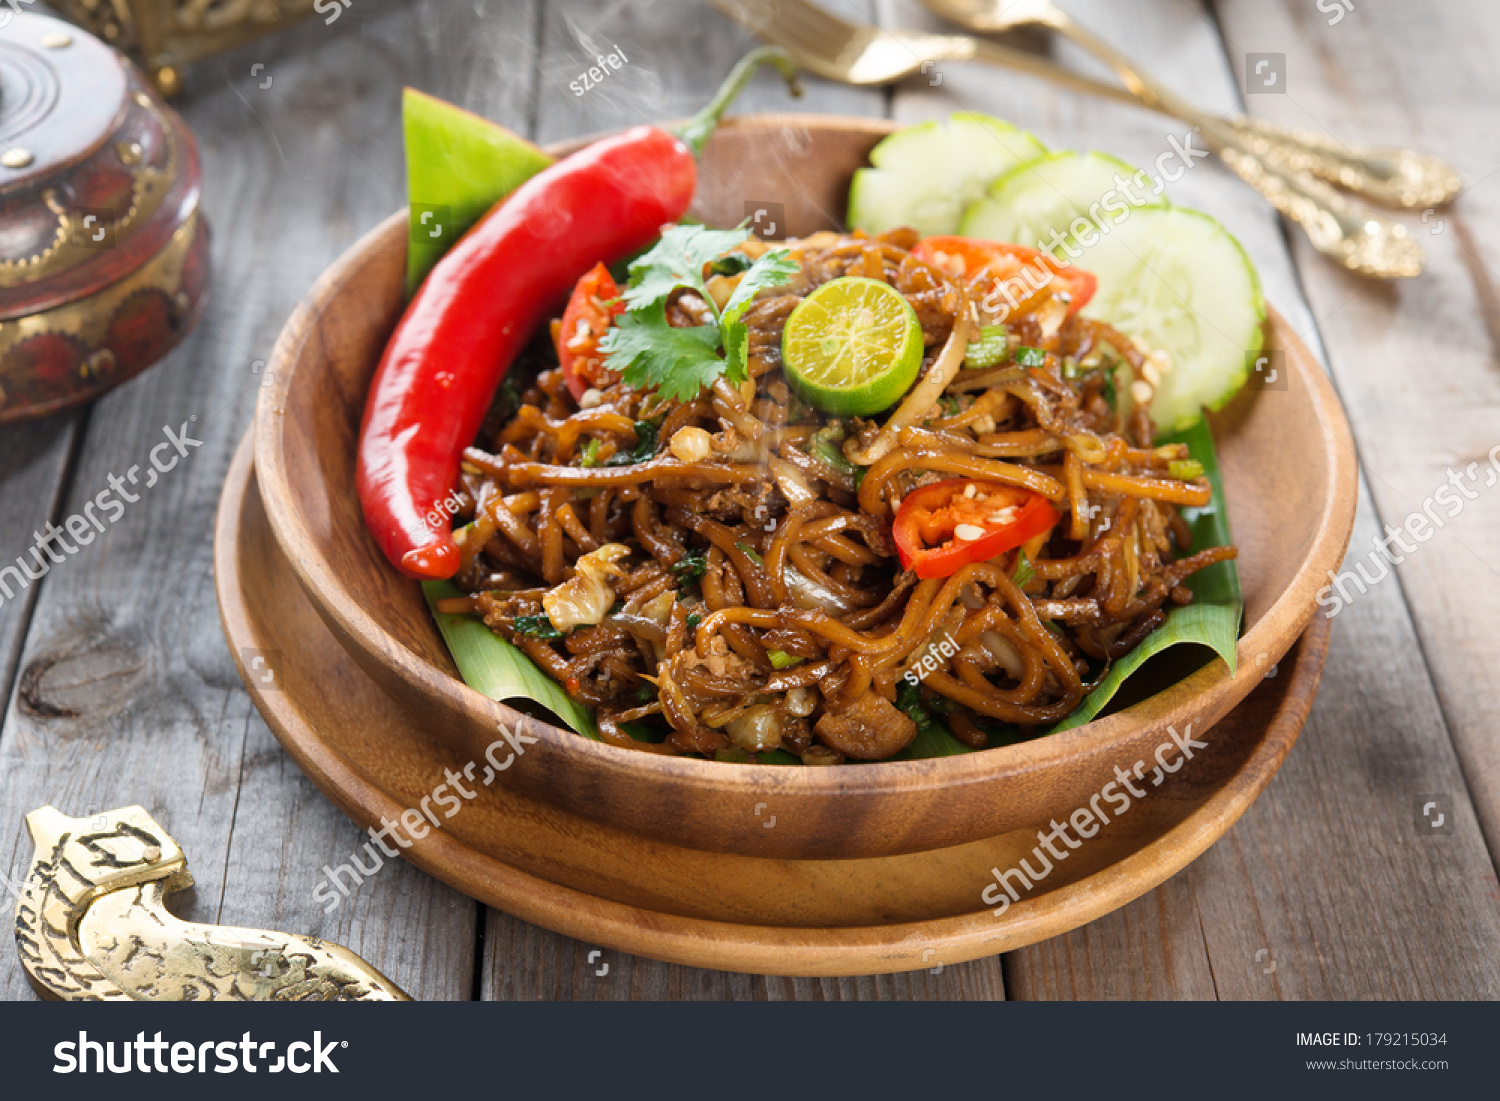 or mee goreng mamak, Indonesian and Malaysian cuisine, spicy fried ...